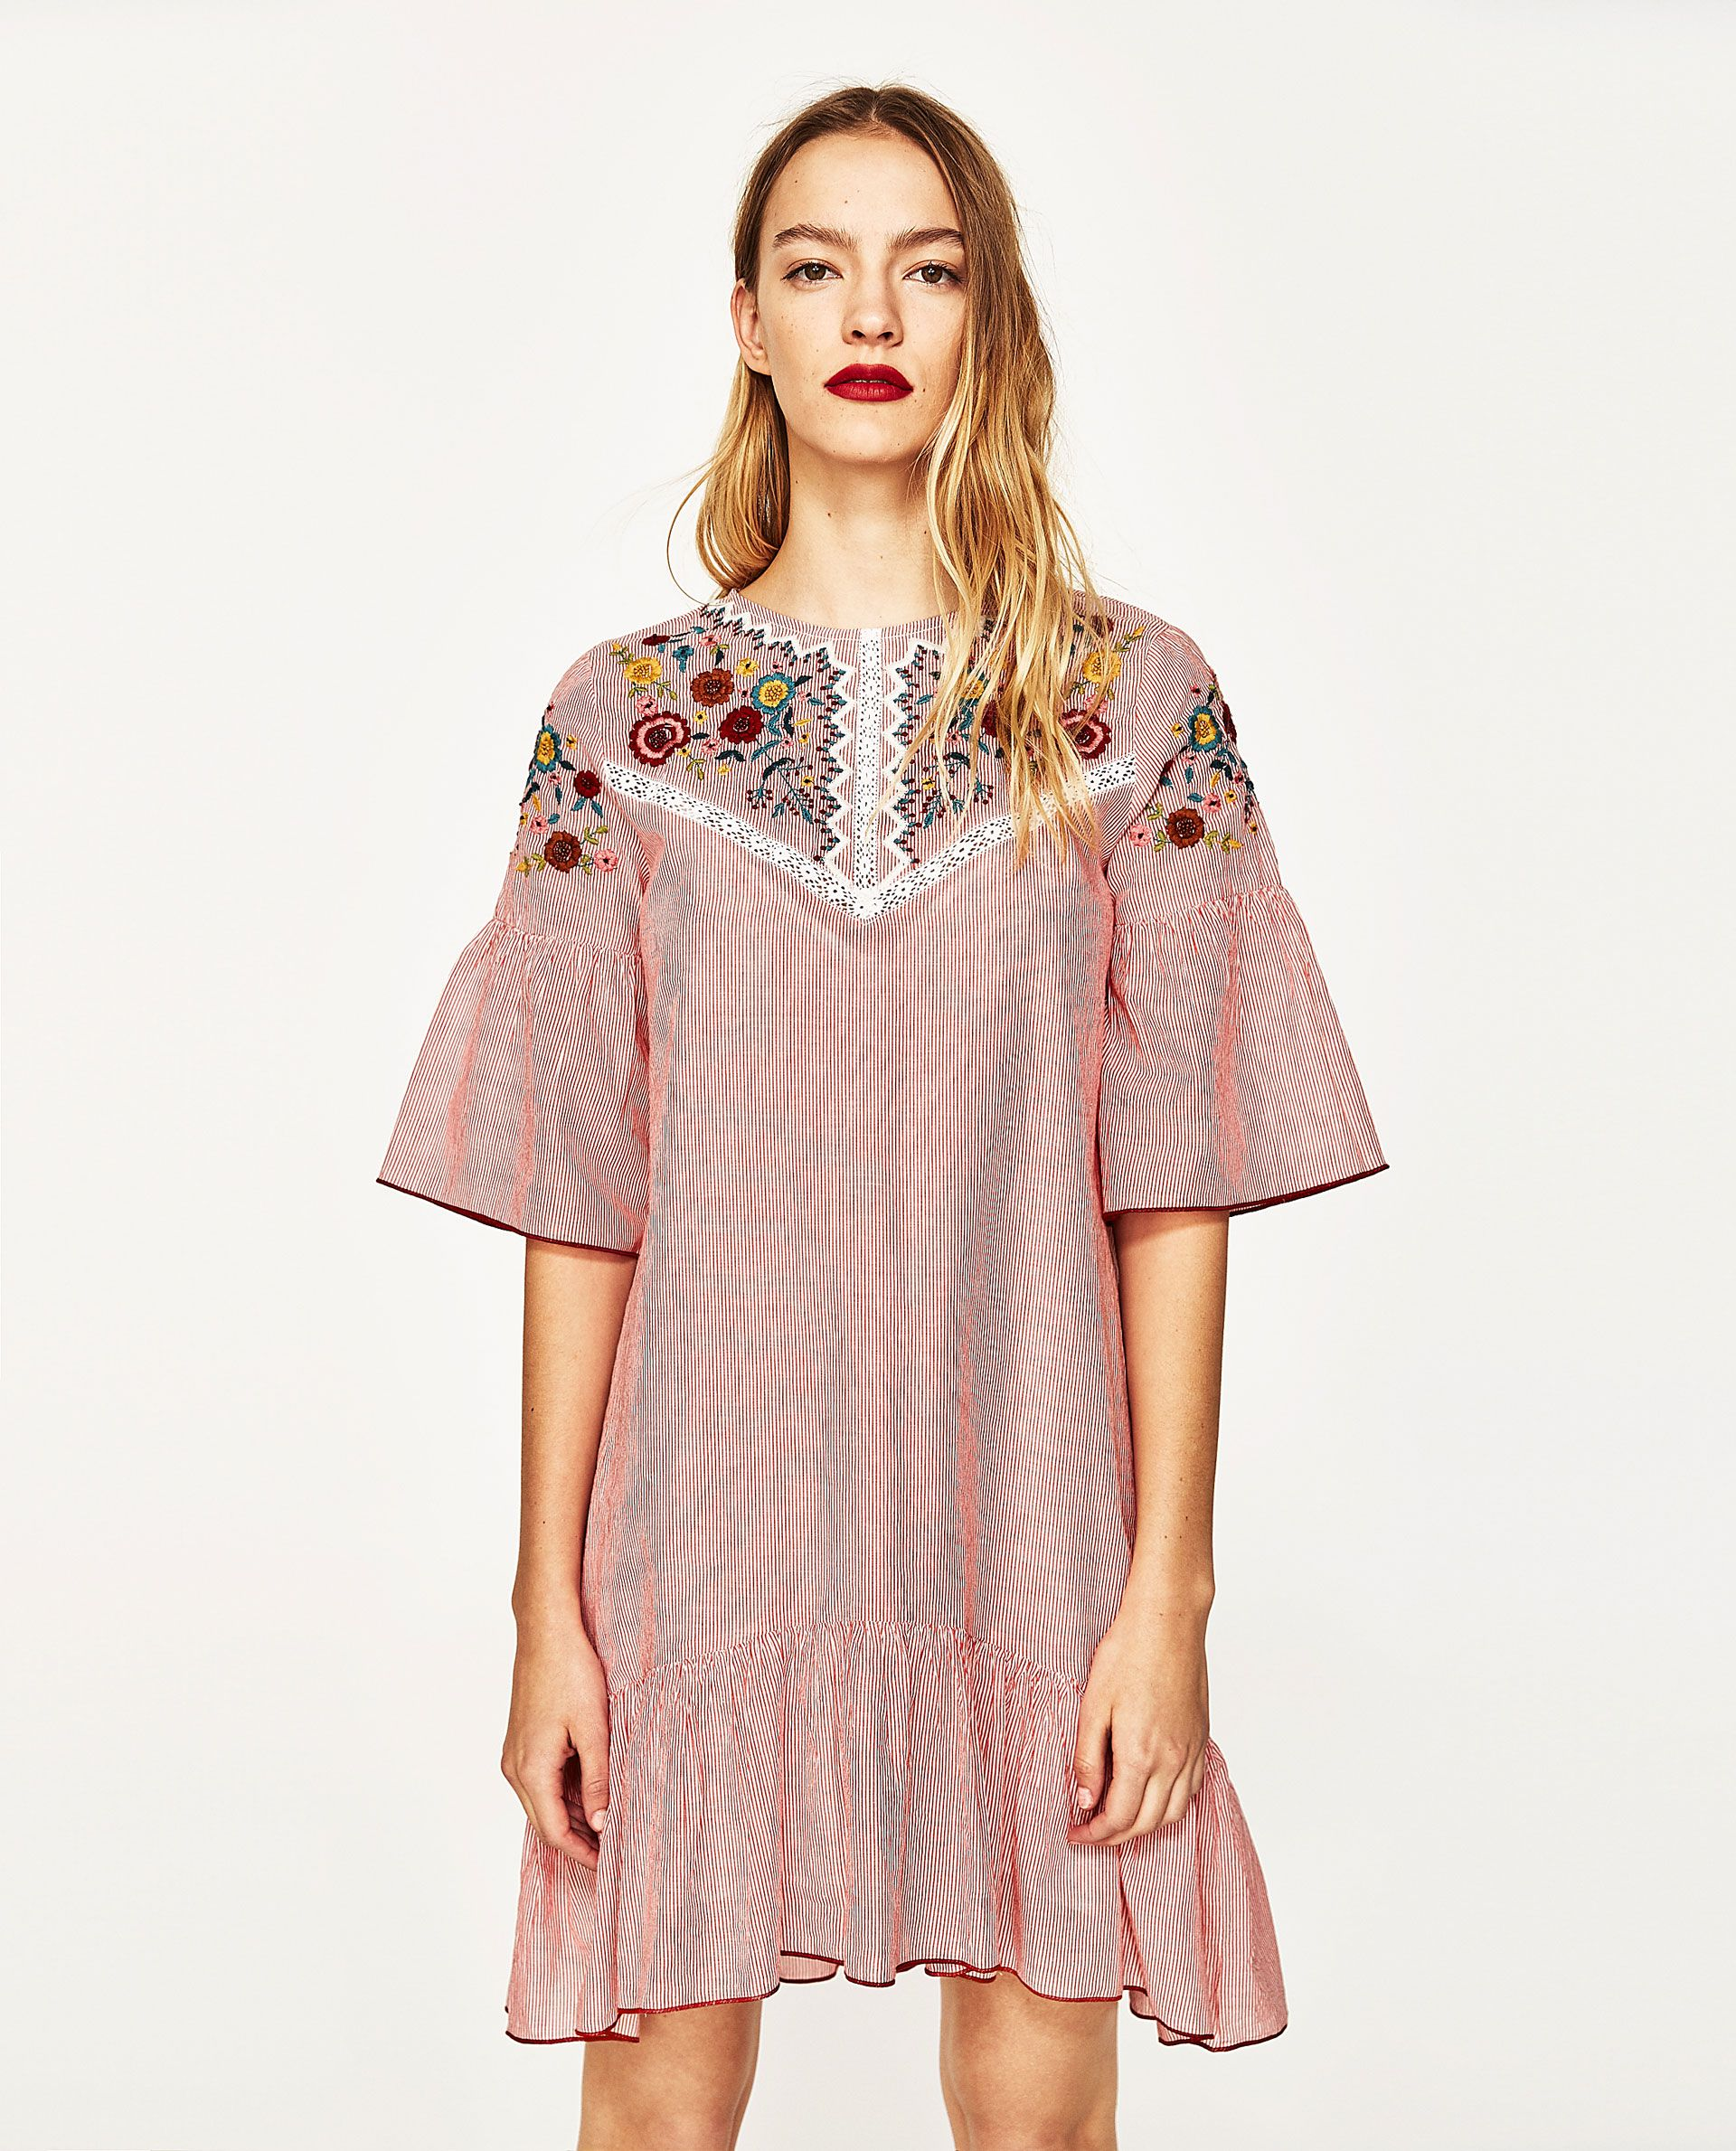 f32f14ddc11801 ZARA PINK EMBROIDERED STRIPED DRESS